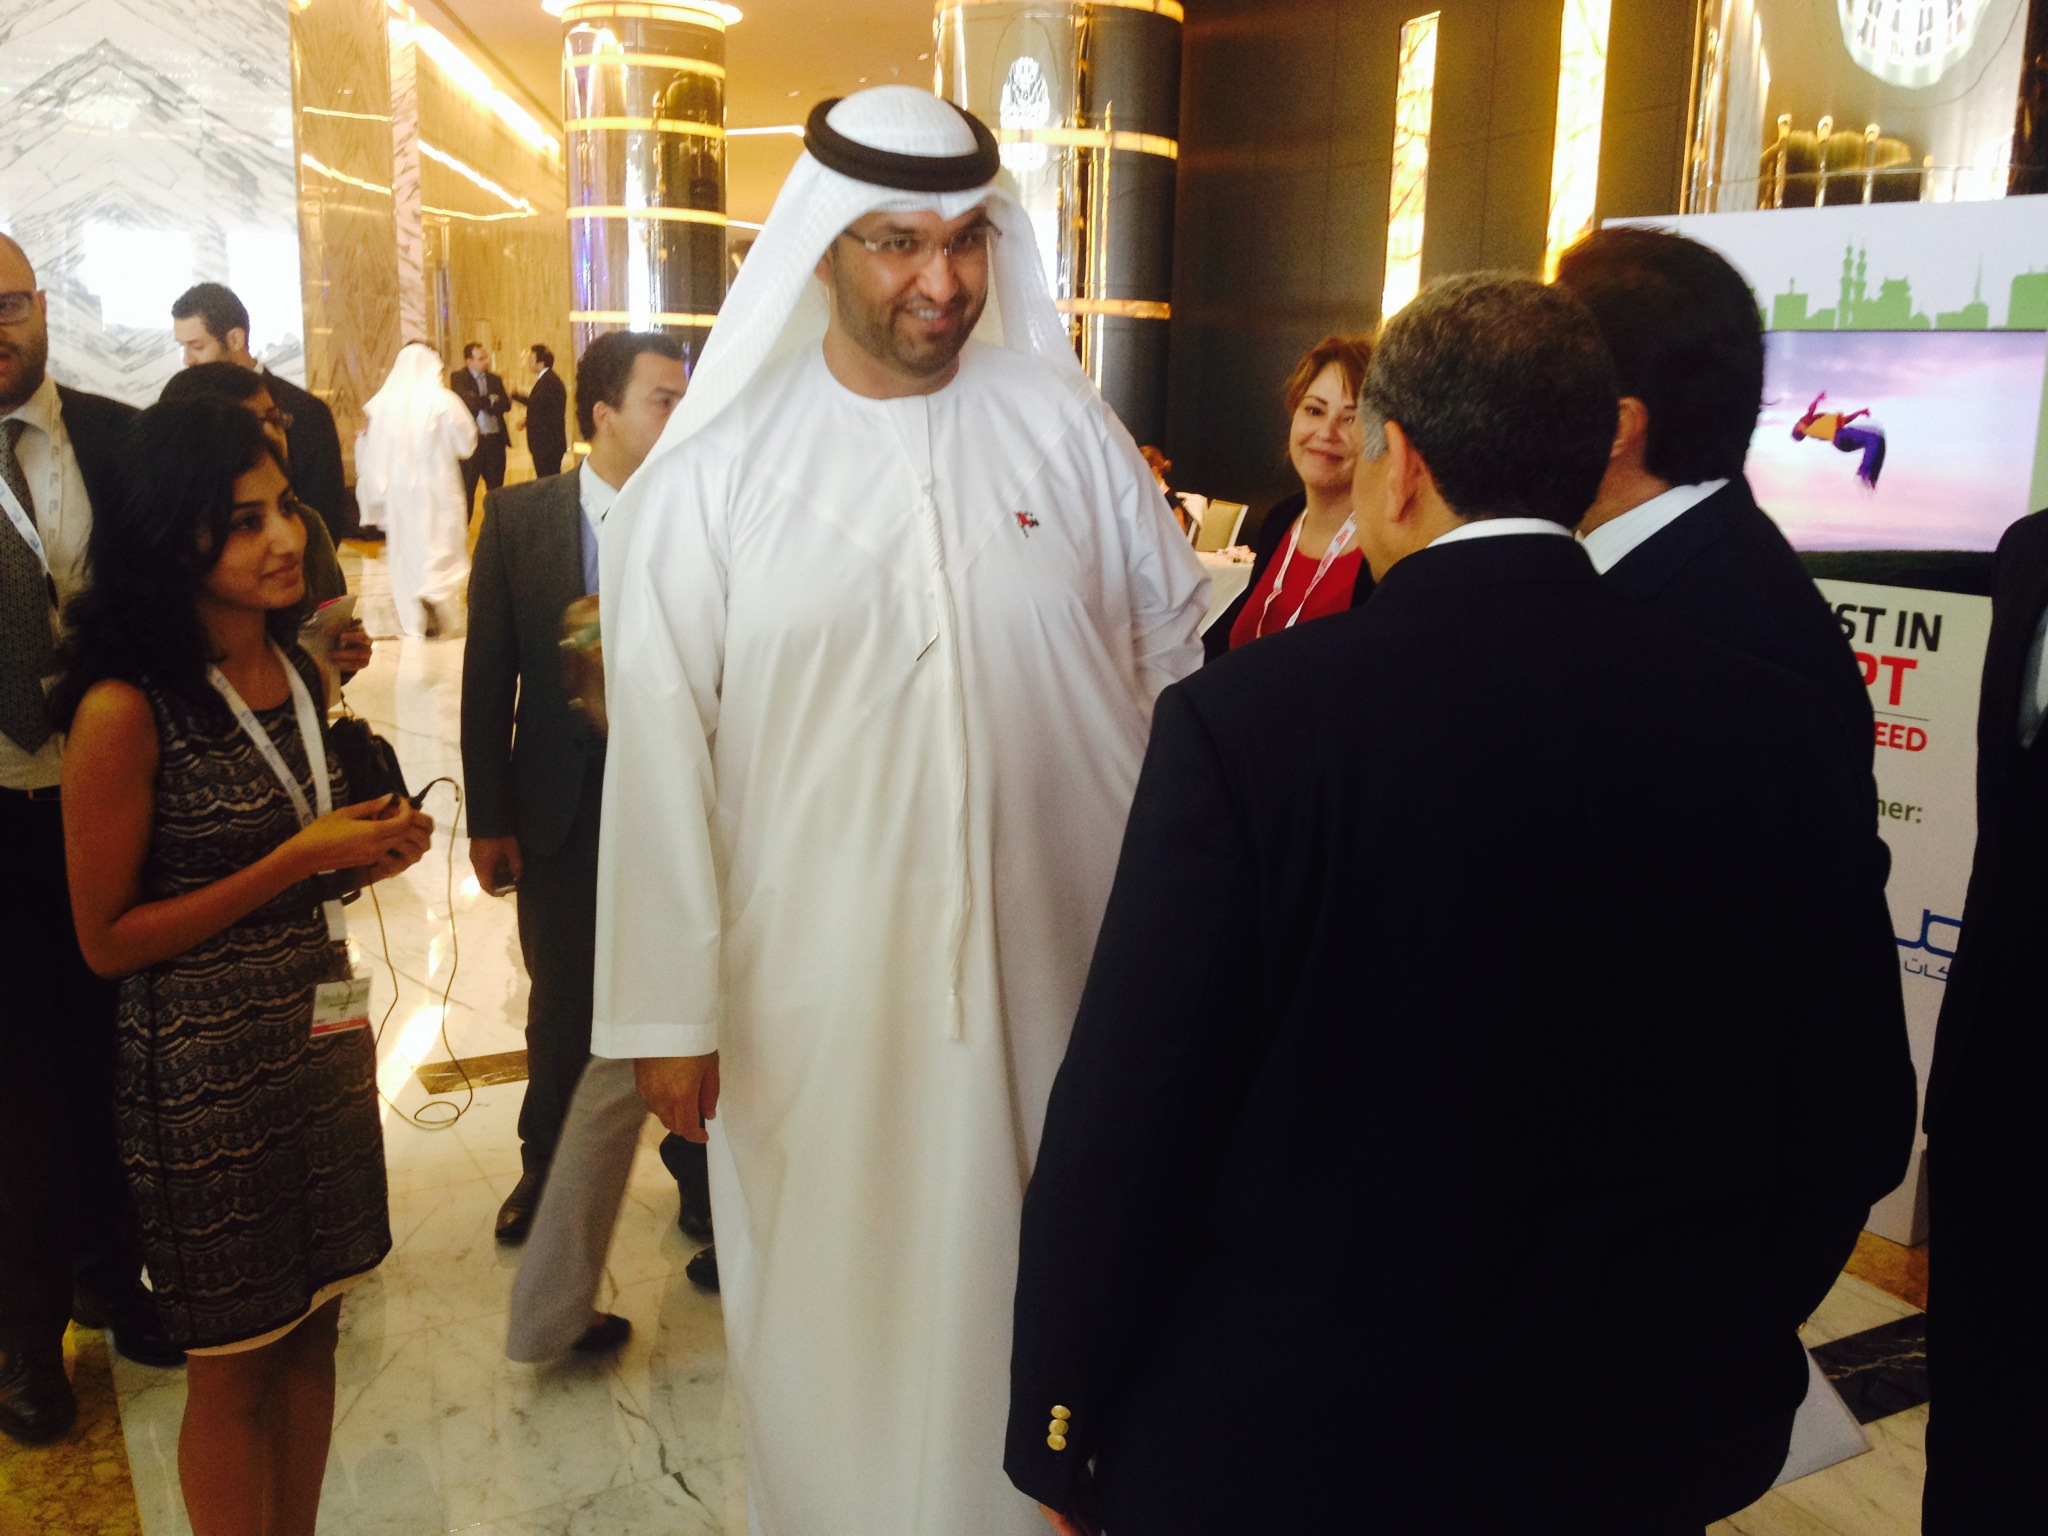 "Sultan Al-Jaber,"" the UAE Minister of State, attended the 'Invest in Egypt 2014' conference in Abu Dhabi on Thursday."